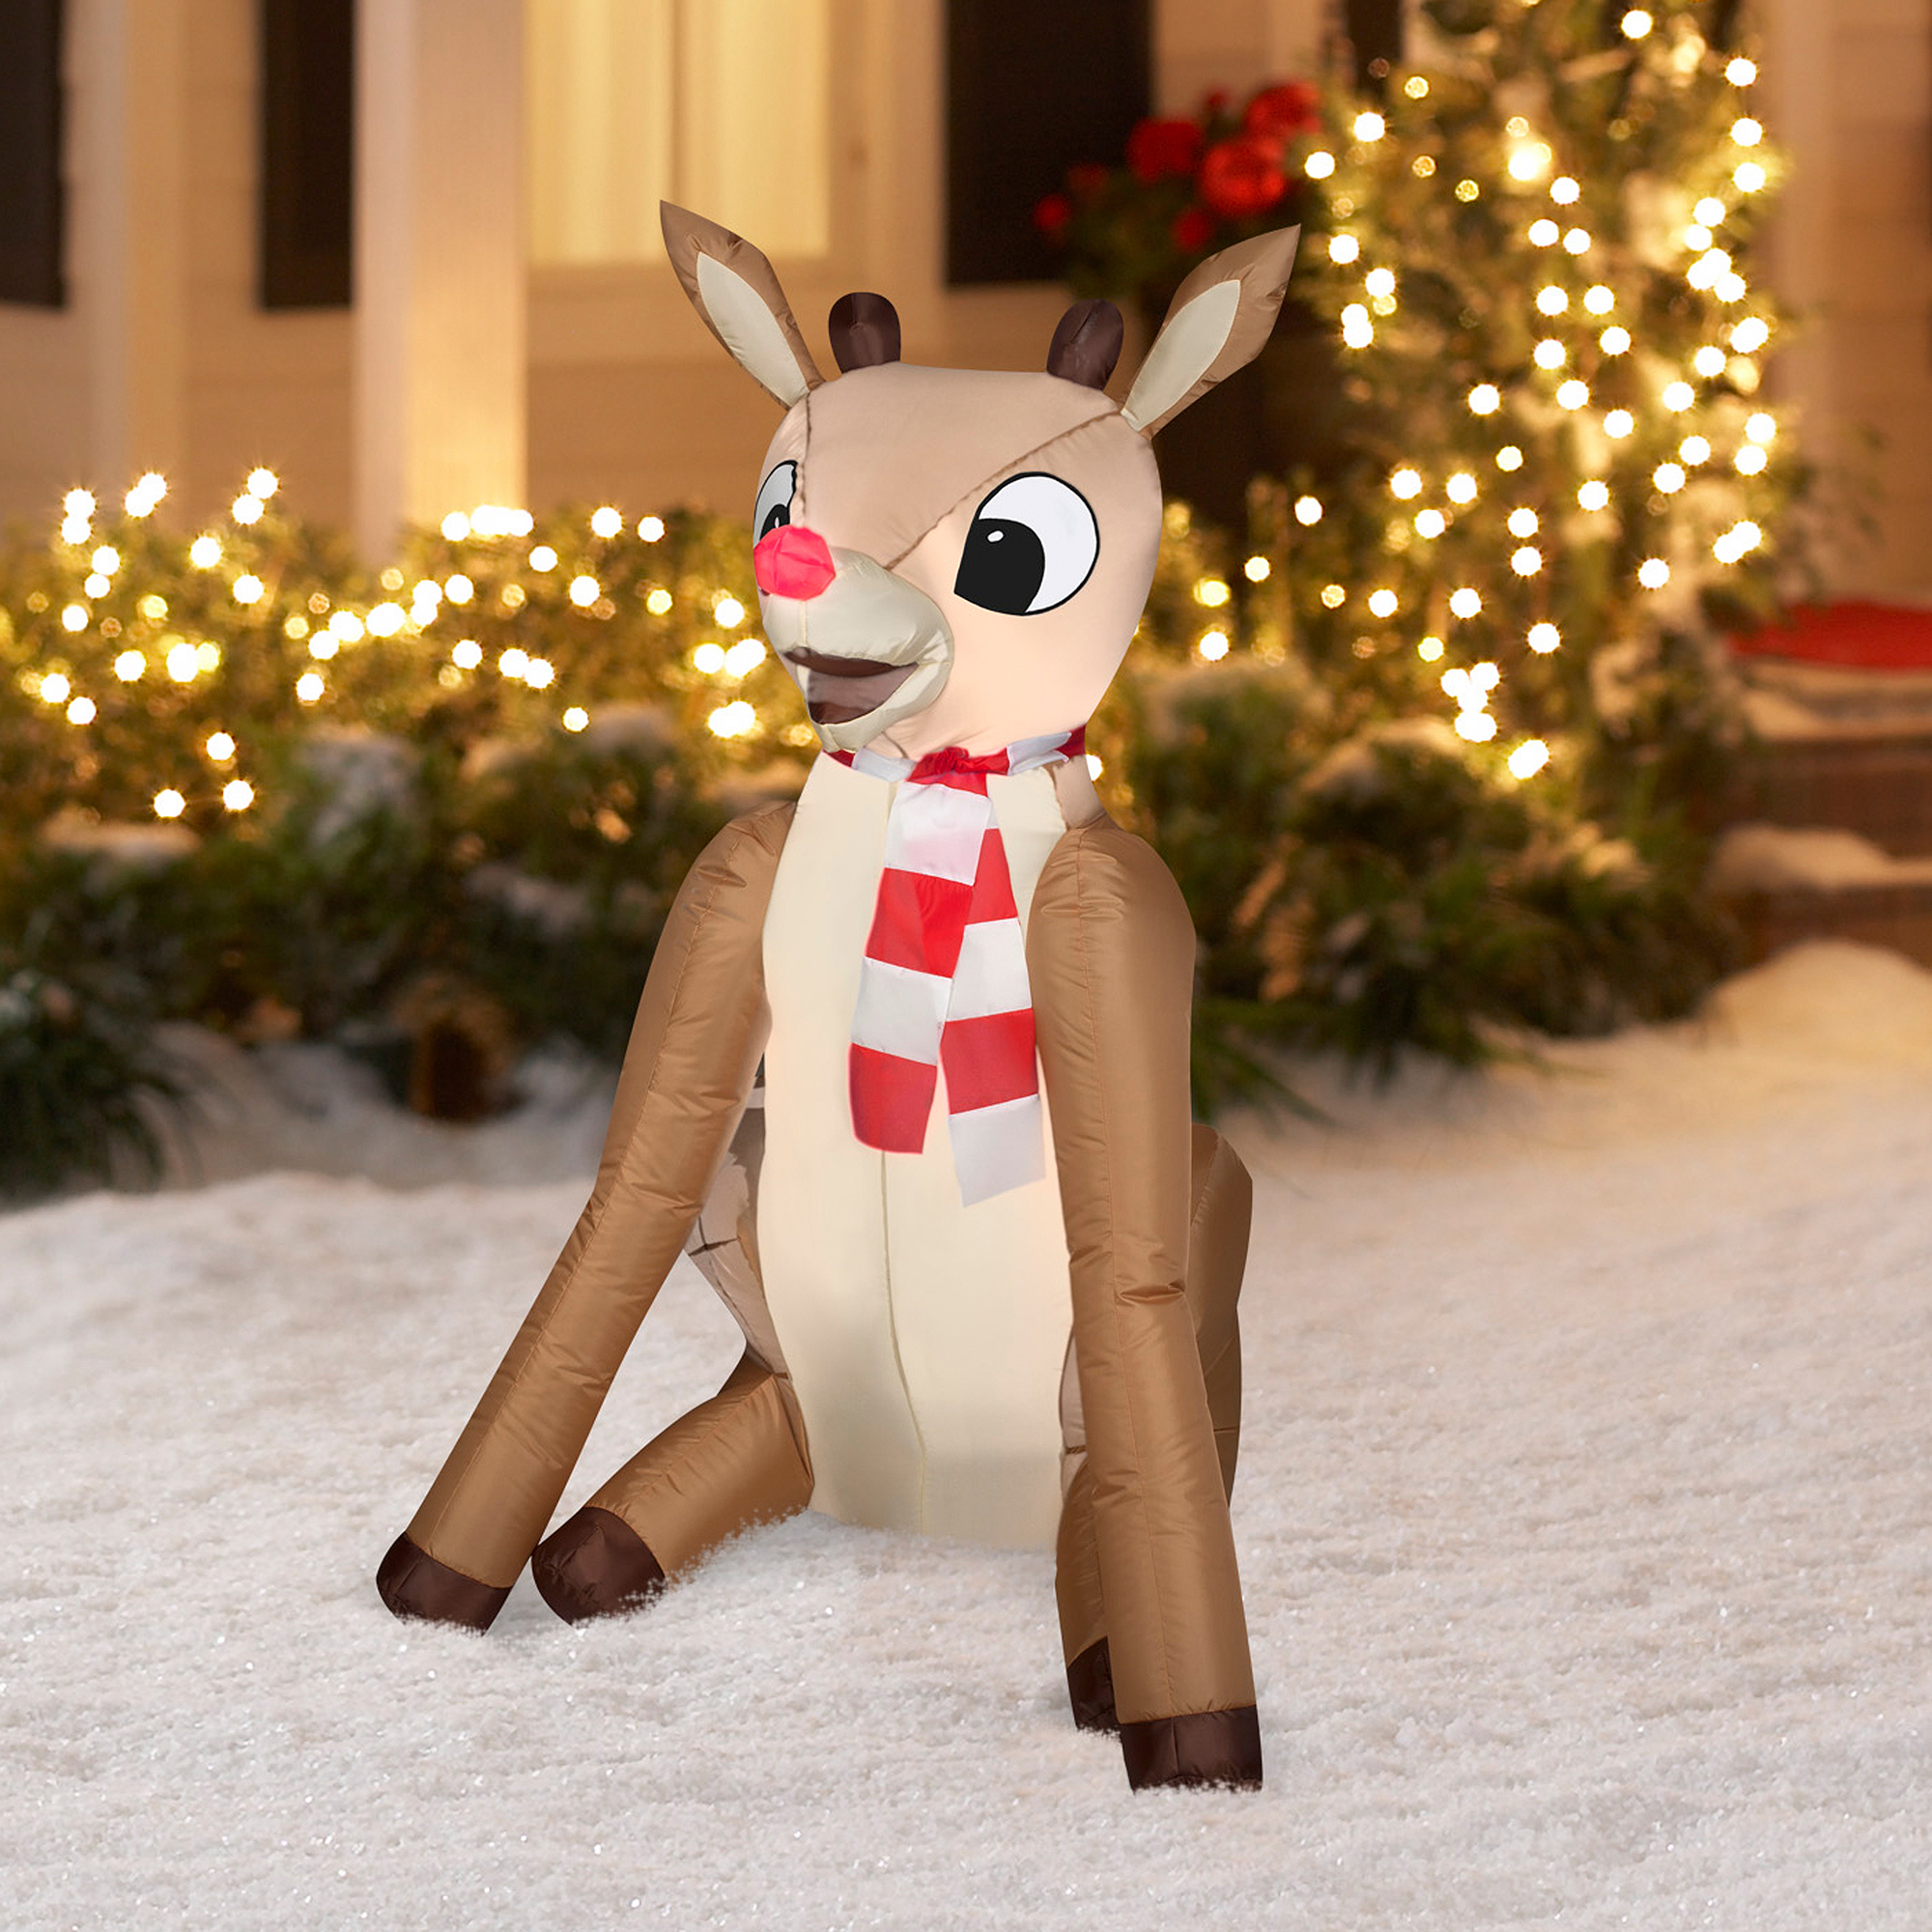 Gemmy Airblown Christmas Inflatables  4' Rudolph Prop / Decoration